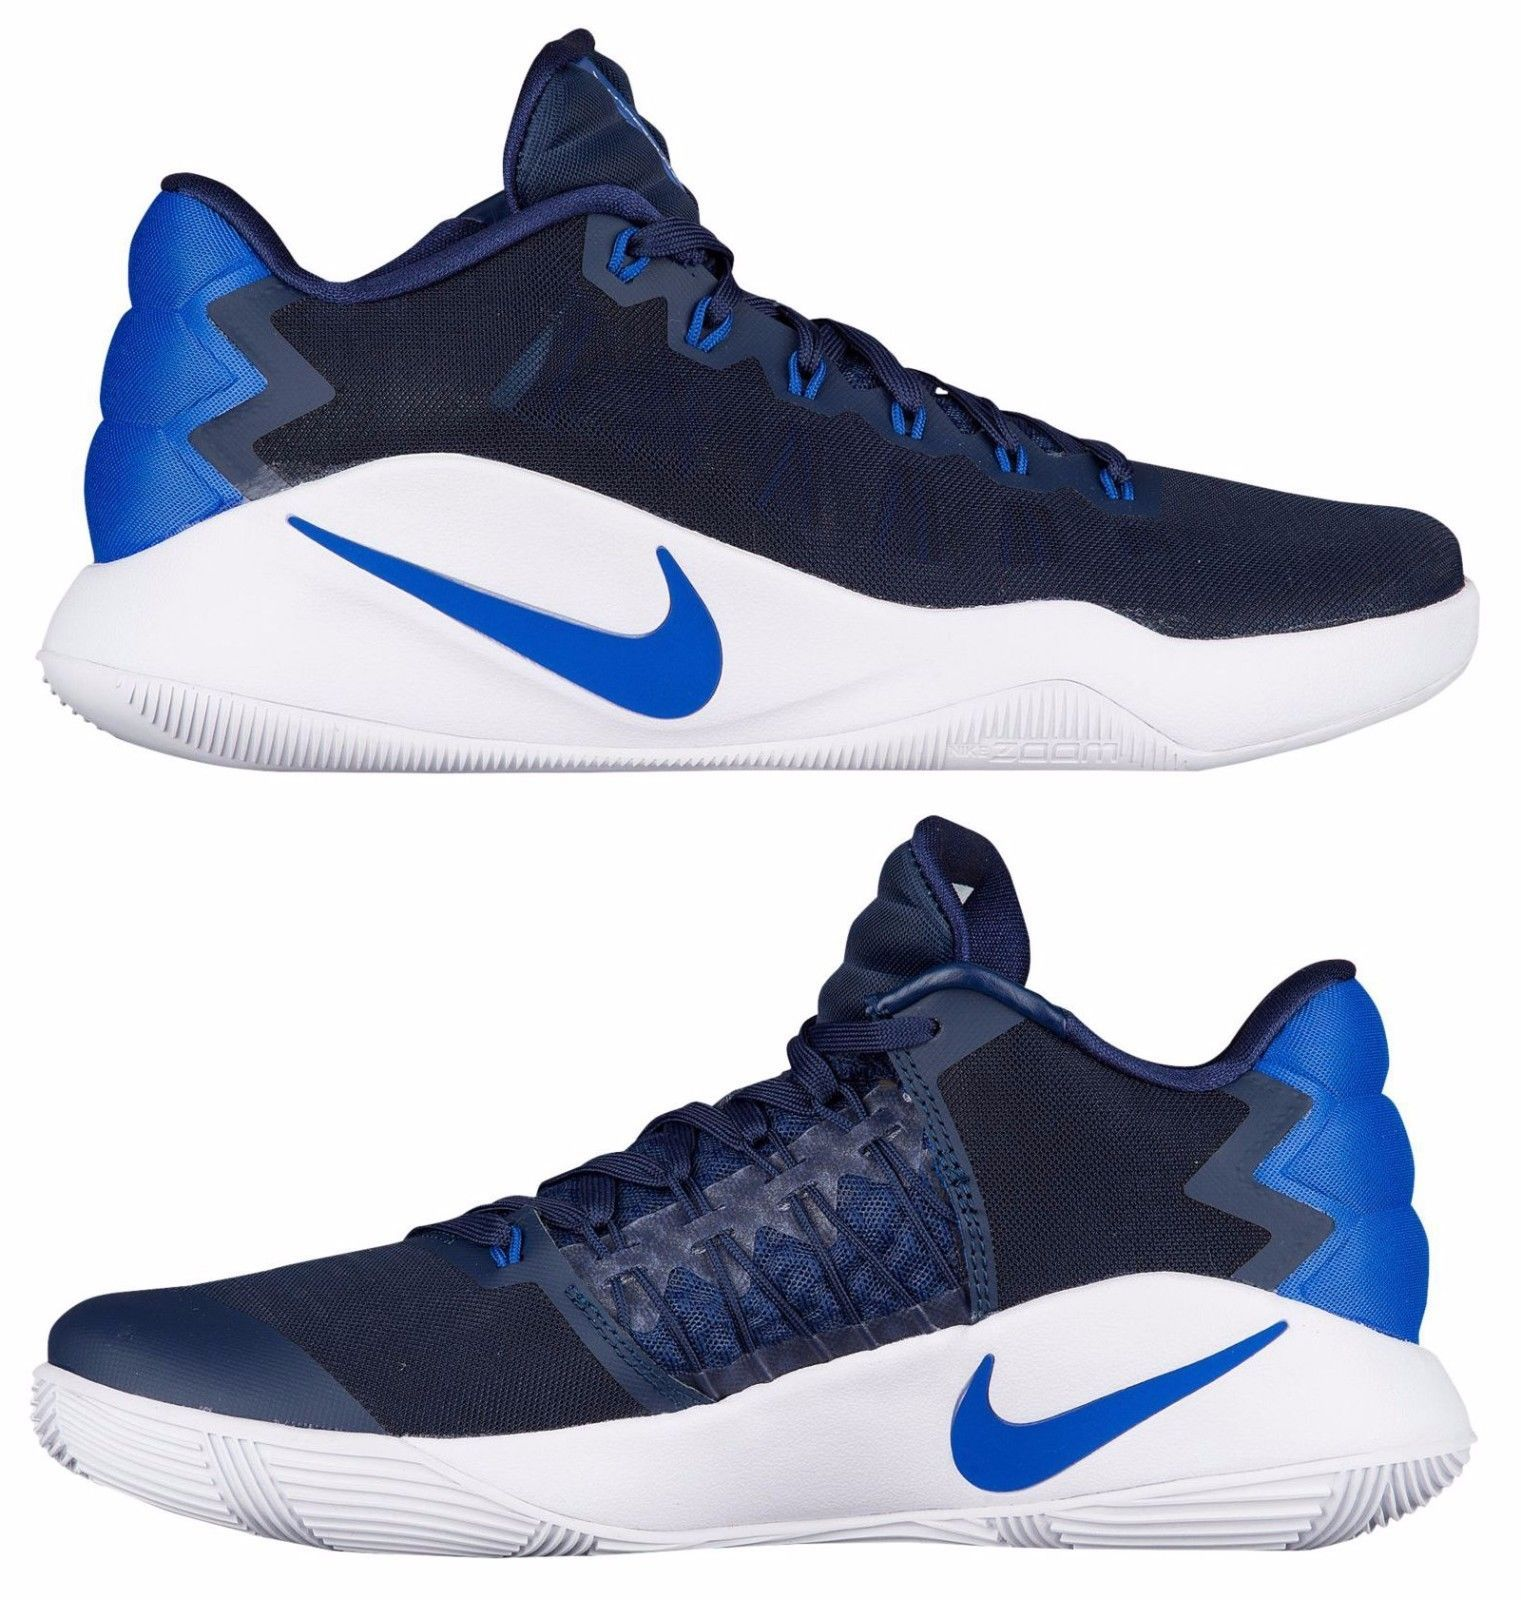 c07944740715 NIKE HYPERDUNK 2016 LOW MEN S BASKETBALL MIDNIGHT NAVY - GAME ROYAL - PHOTO  BLUE